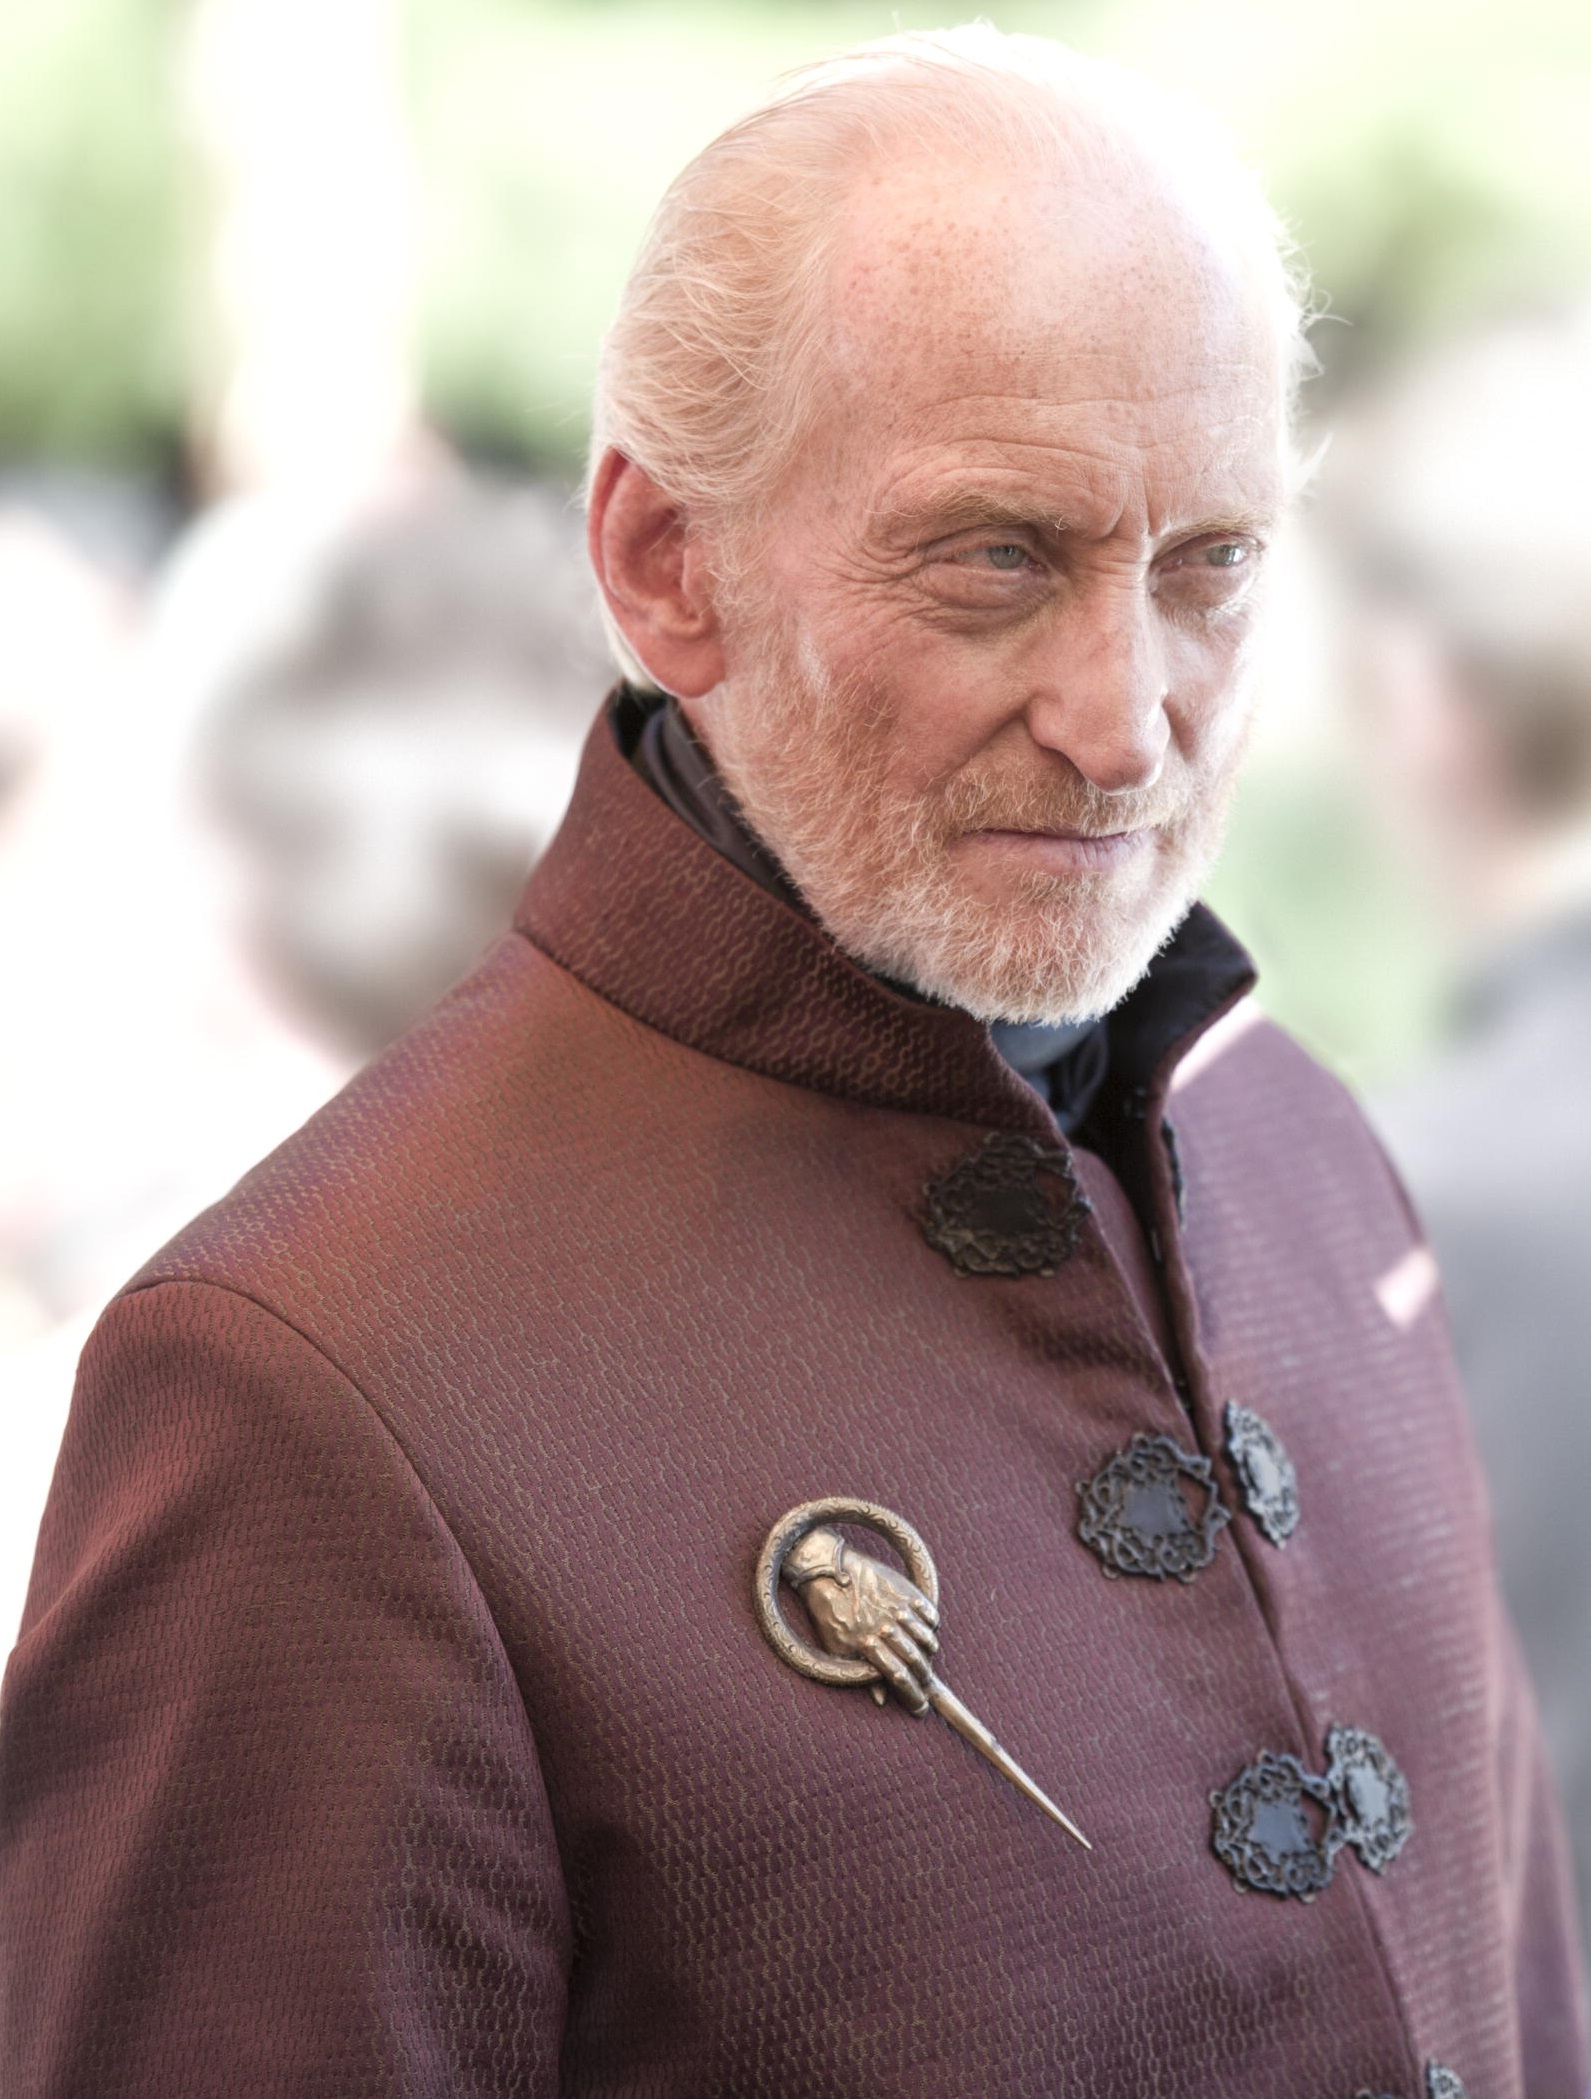 charles dance and meryl streepcharles dance witcher 3, charles dance game of thrones, charles dance height, charles dance dancing gif, charles dance gif, charles dance dracula, charles dance 2016, charles dance phantom of the opera, charles dance in dress, charles dance facebook, charles dance enemy of man, charles dance photos, charles dance the last action hero, charles dance and meryl streep, charles dance audiobooks, charles dance net worth, charles dance ice bucket challenge, charles dance sochi poem, charles dance narrator, charles dance and lena headey